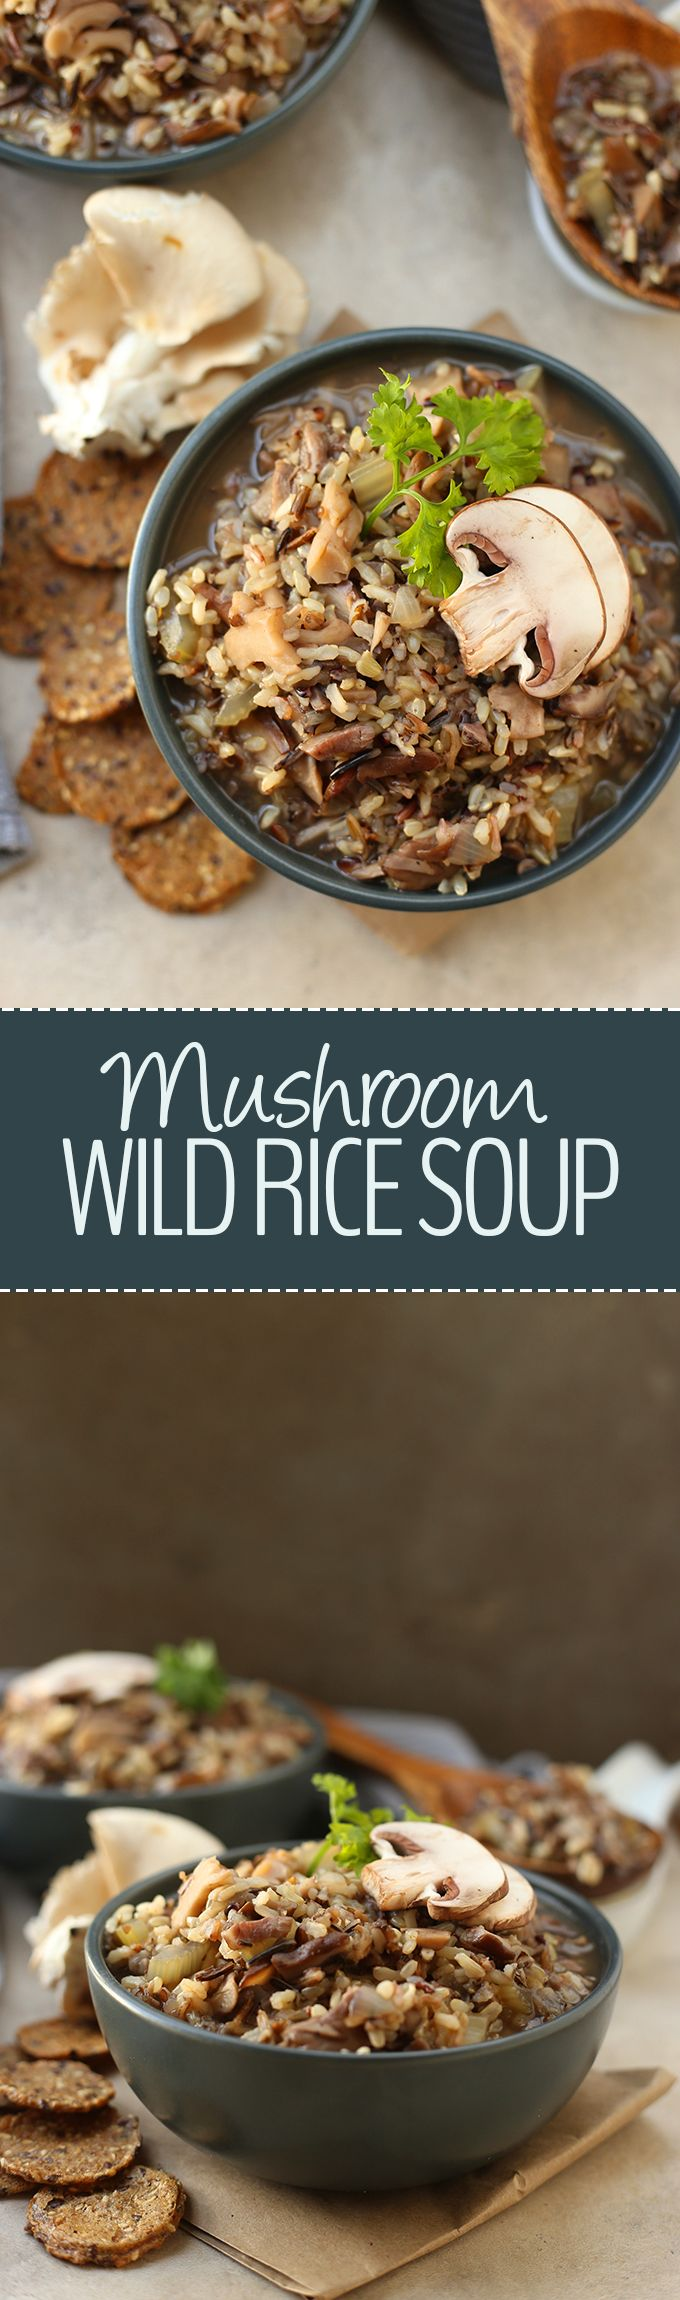 A healthy vegetarian soup recipe, this mushroom and wild rice soup is the perfect dish to keep on hand for cold winter nights! It's hearty, filling and packed-full of flavor. Plus it requires just 7 ingredients!